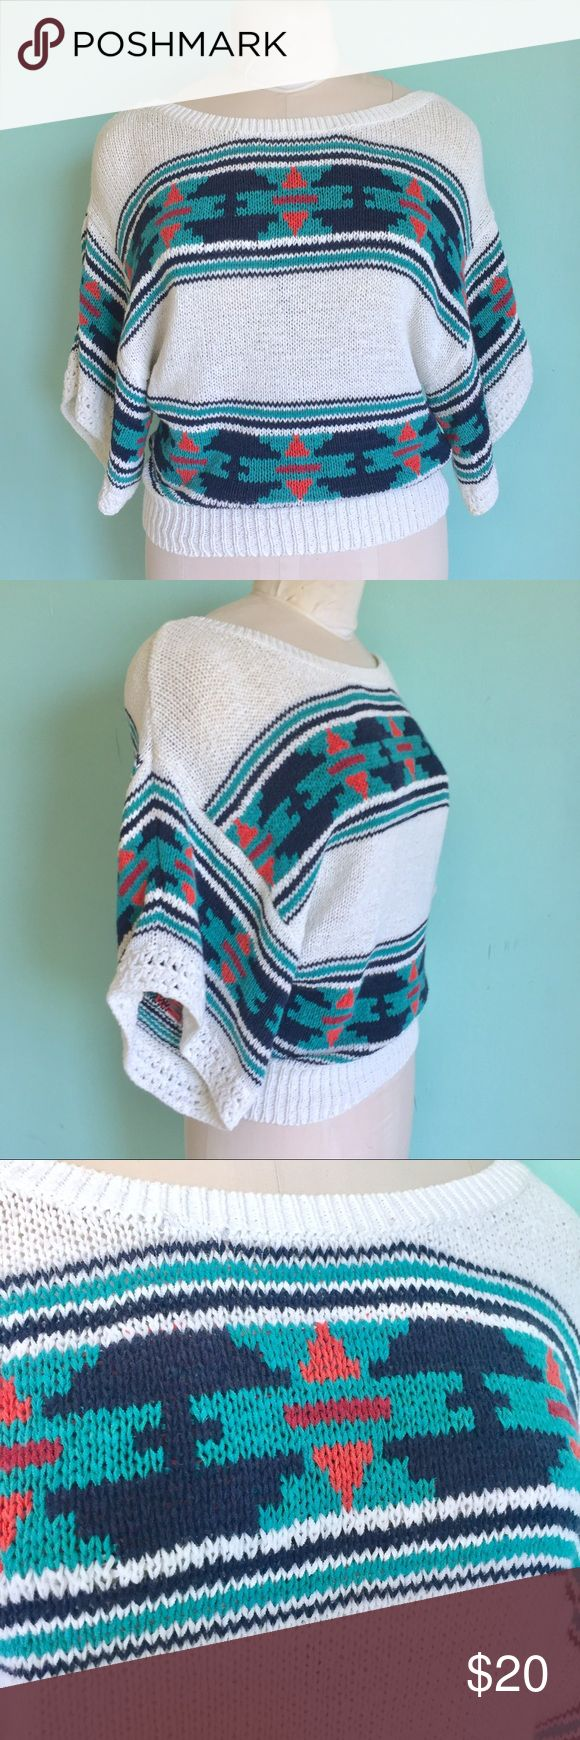 Aztec Tribal Print Sweater Quarter Sleeves Up for Sale In good preowned condition Sweater by American Eagle. Size S. Check out my closet, bundle and give me your offer! 💚 American Eagle Outfitters Tops